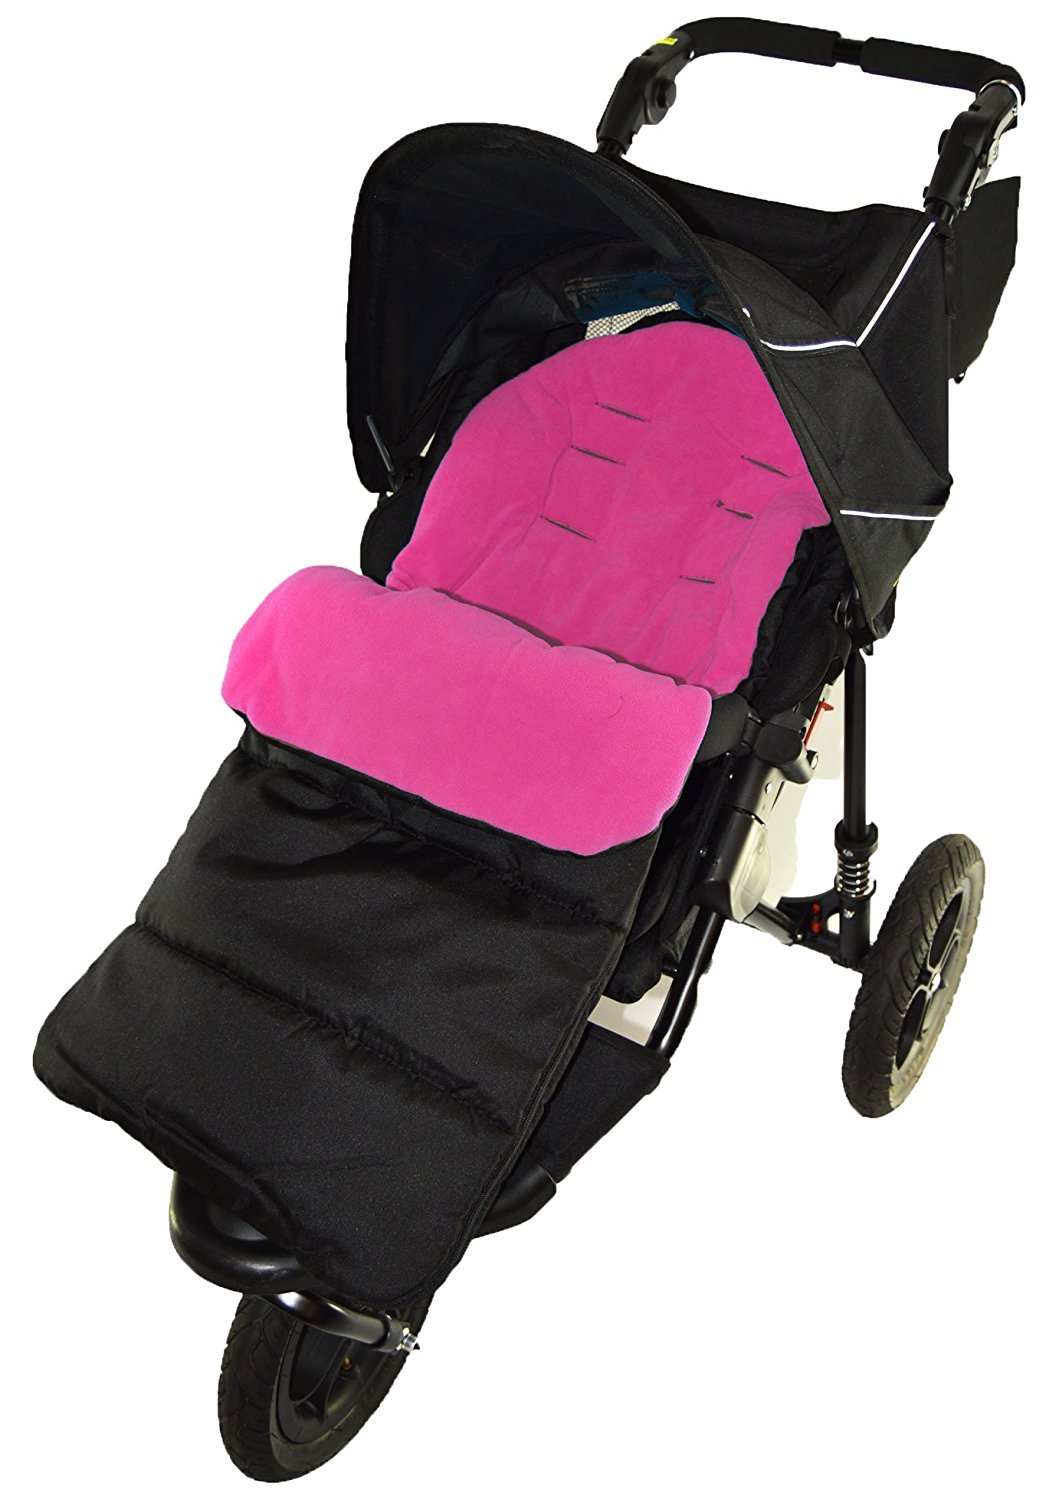 Footmuff//Cosy Toes Compatible with Mountain Buugy Terrain Pushchair Pink Rose